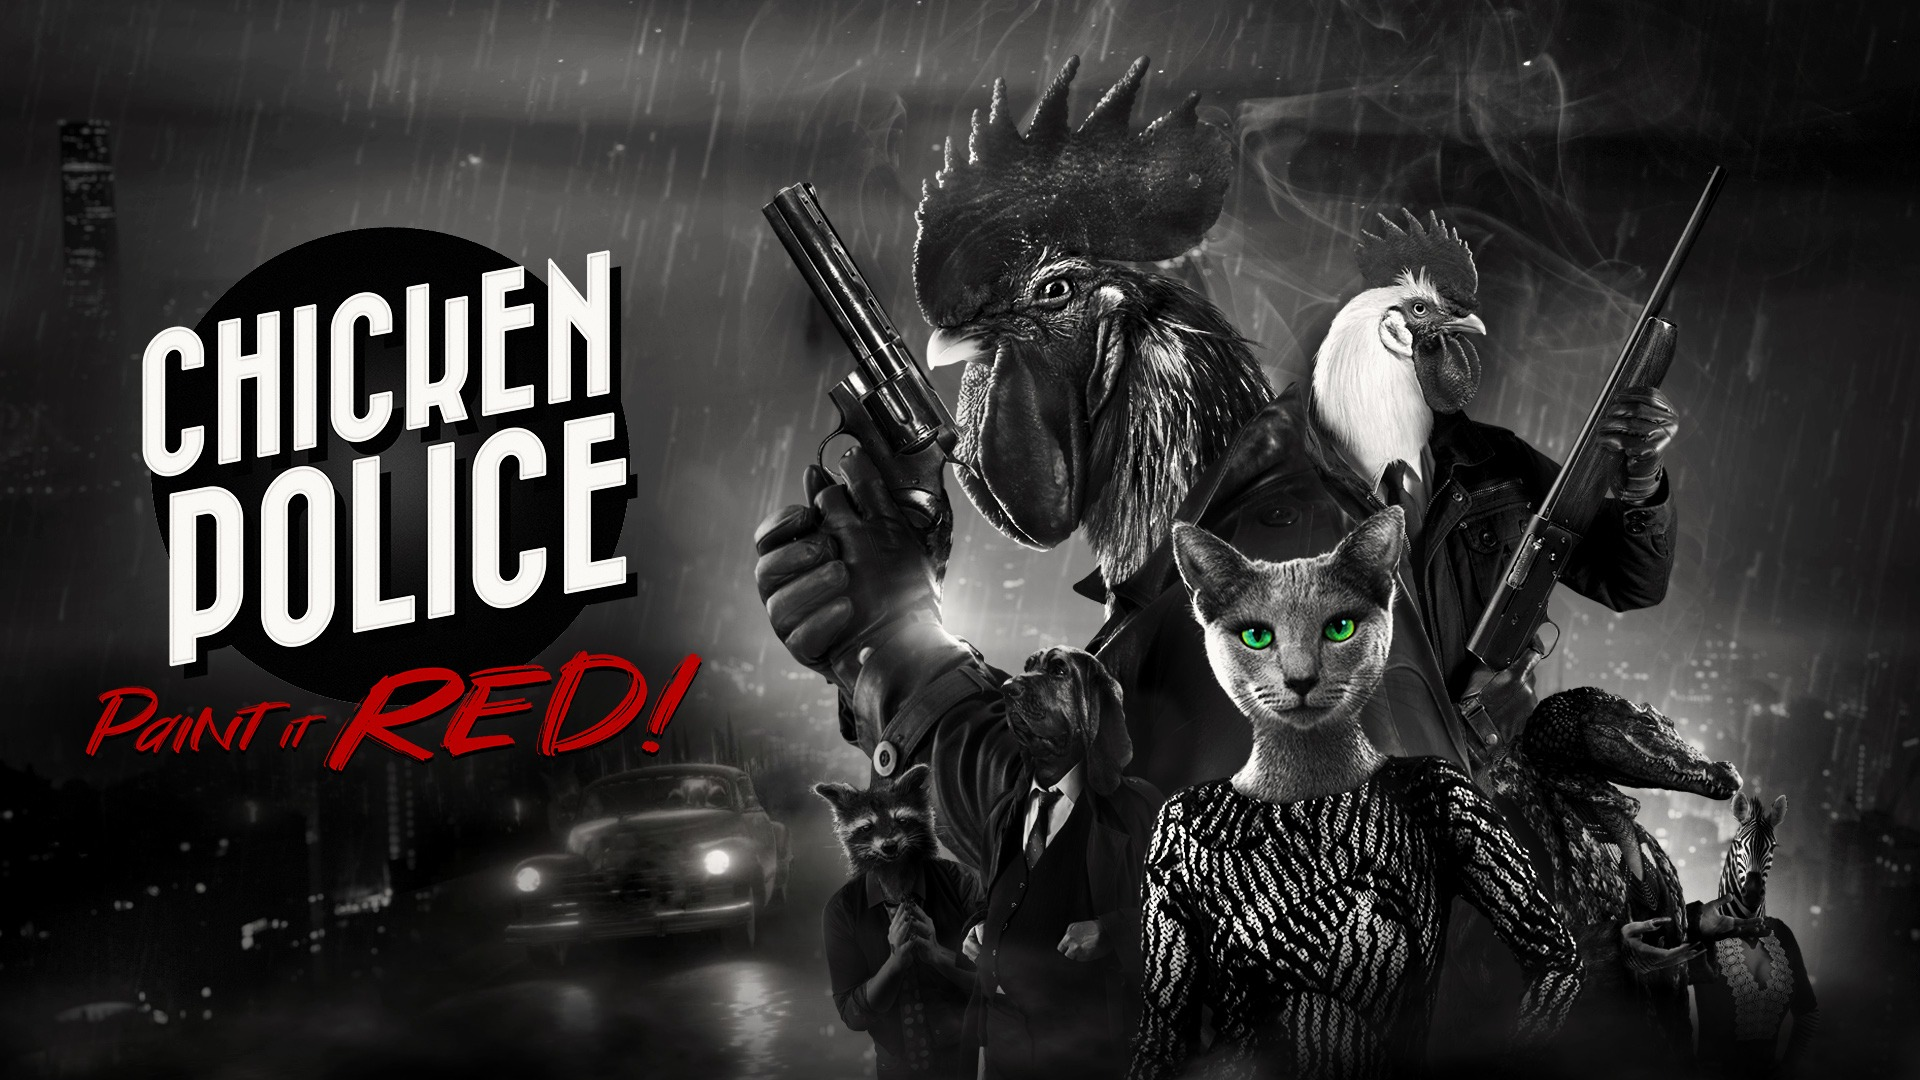 Chicken Police Paint it Red! stats facts